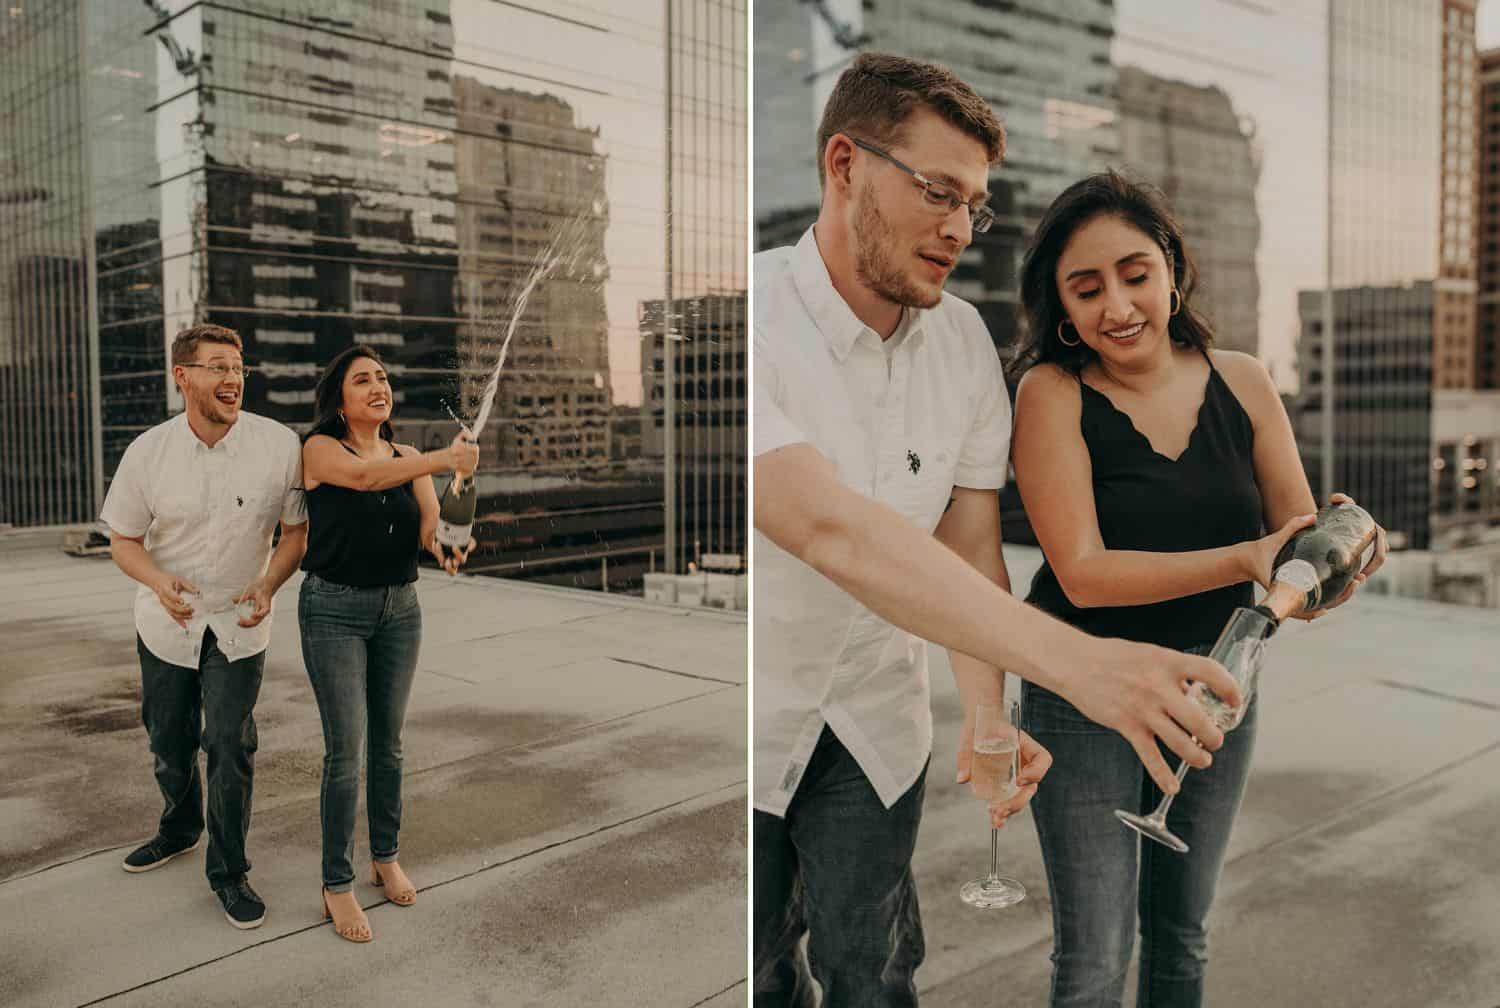 A couple pops a bottle of champagne and celebrates with drinks on a city rooftop